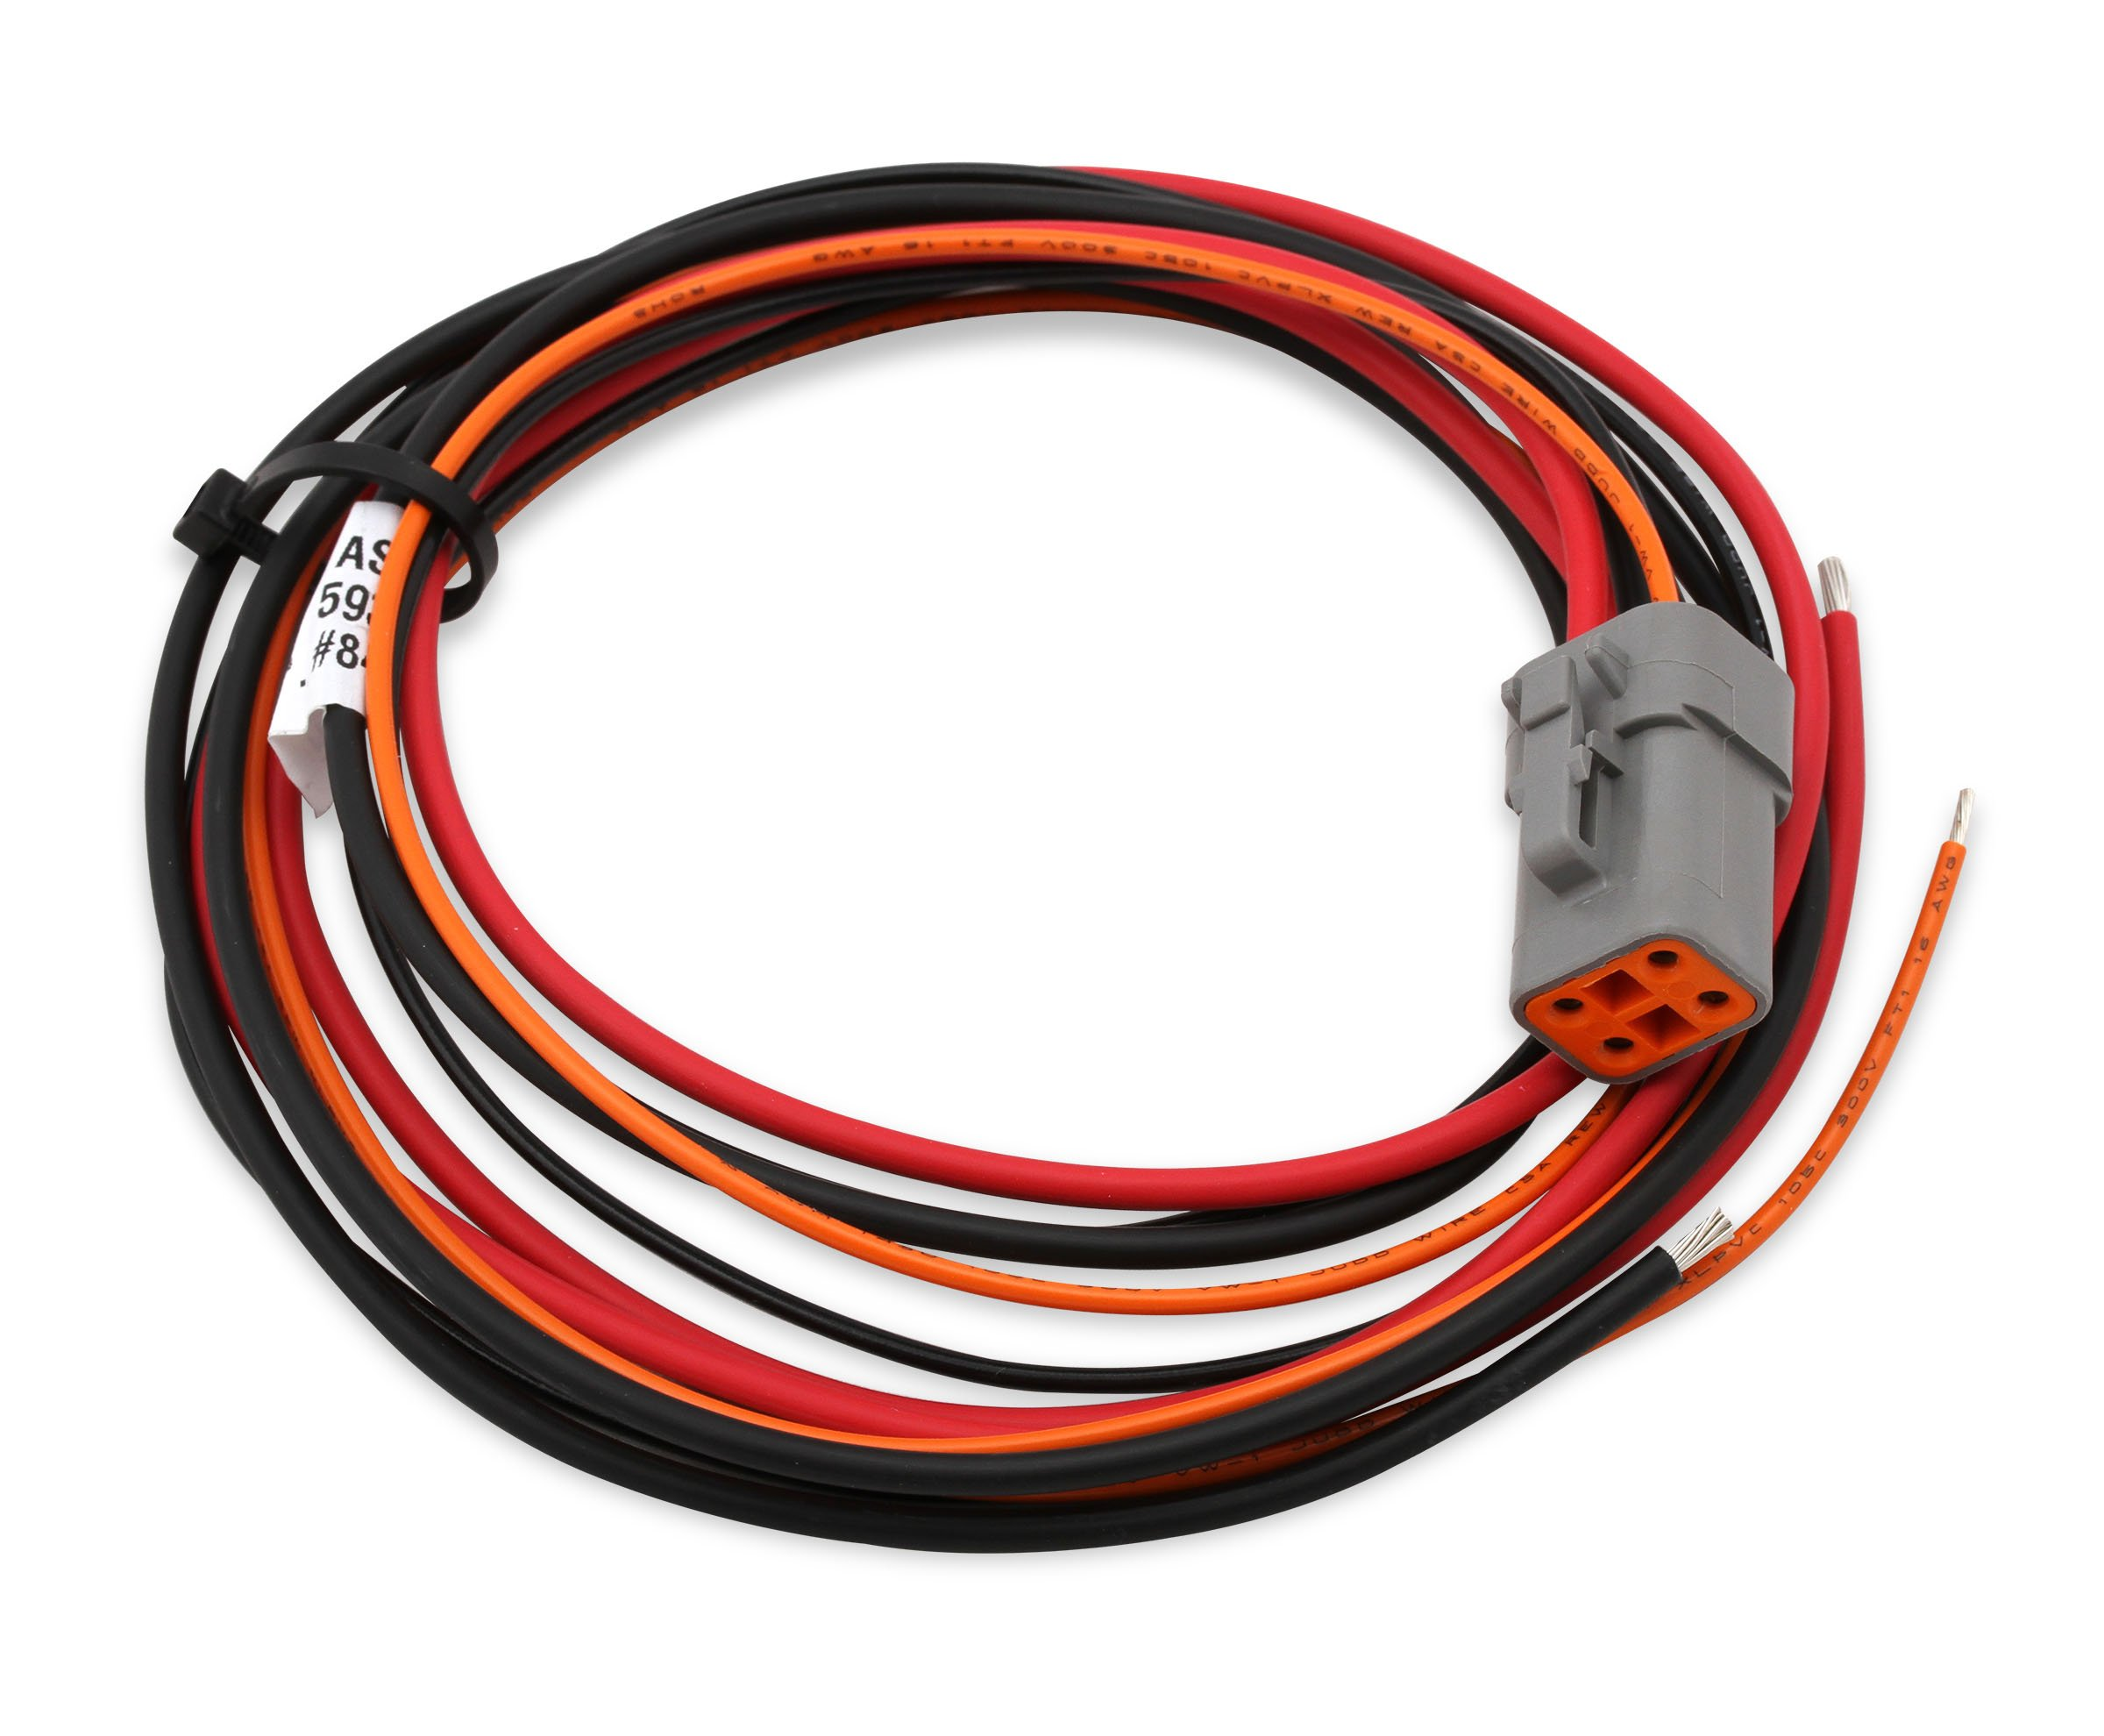 Manualguide Wiring Diagram Msd 8860 Harness 8895 Replacement For 7720 Rh Holley Com